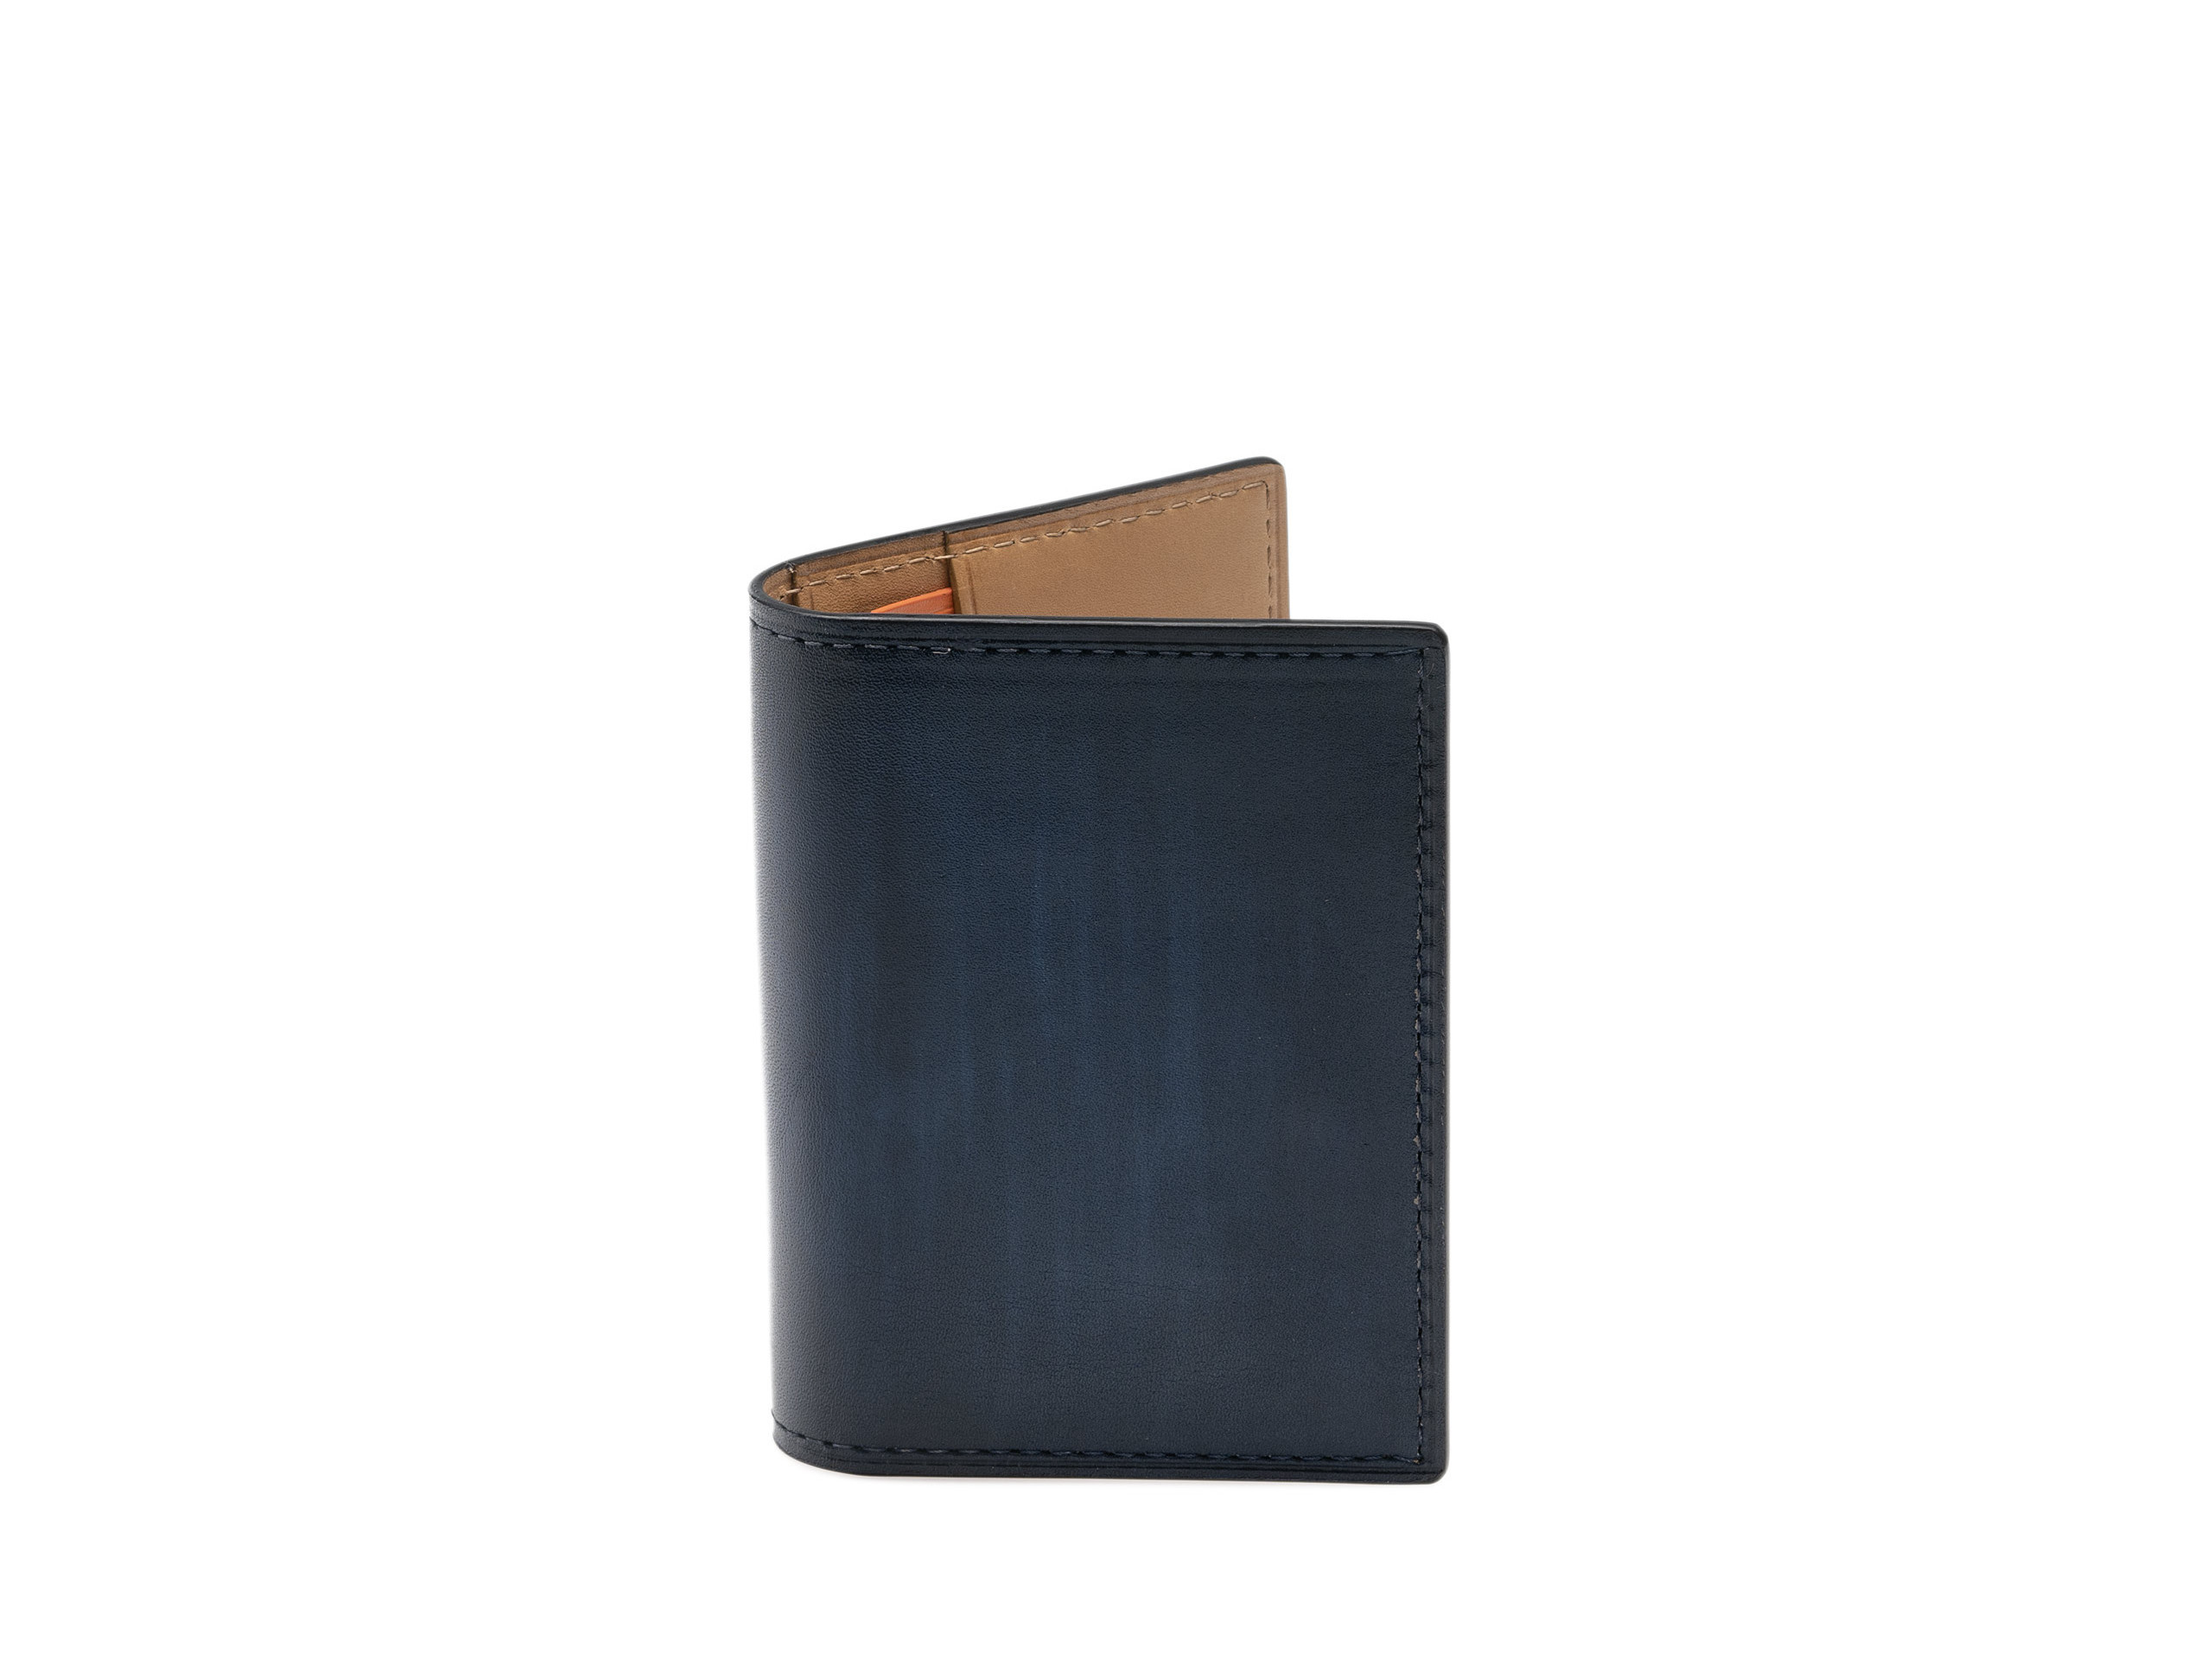 Front view of the Magnanni Card Fold Royal Men's Designer Wallets